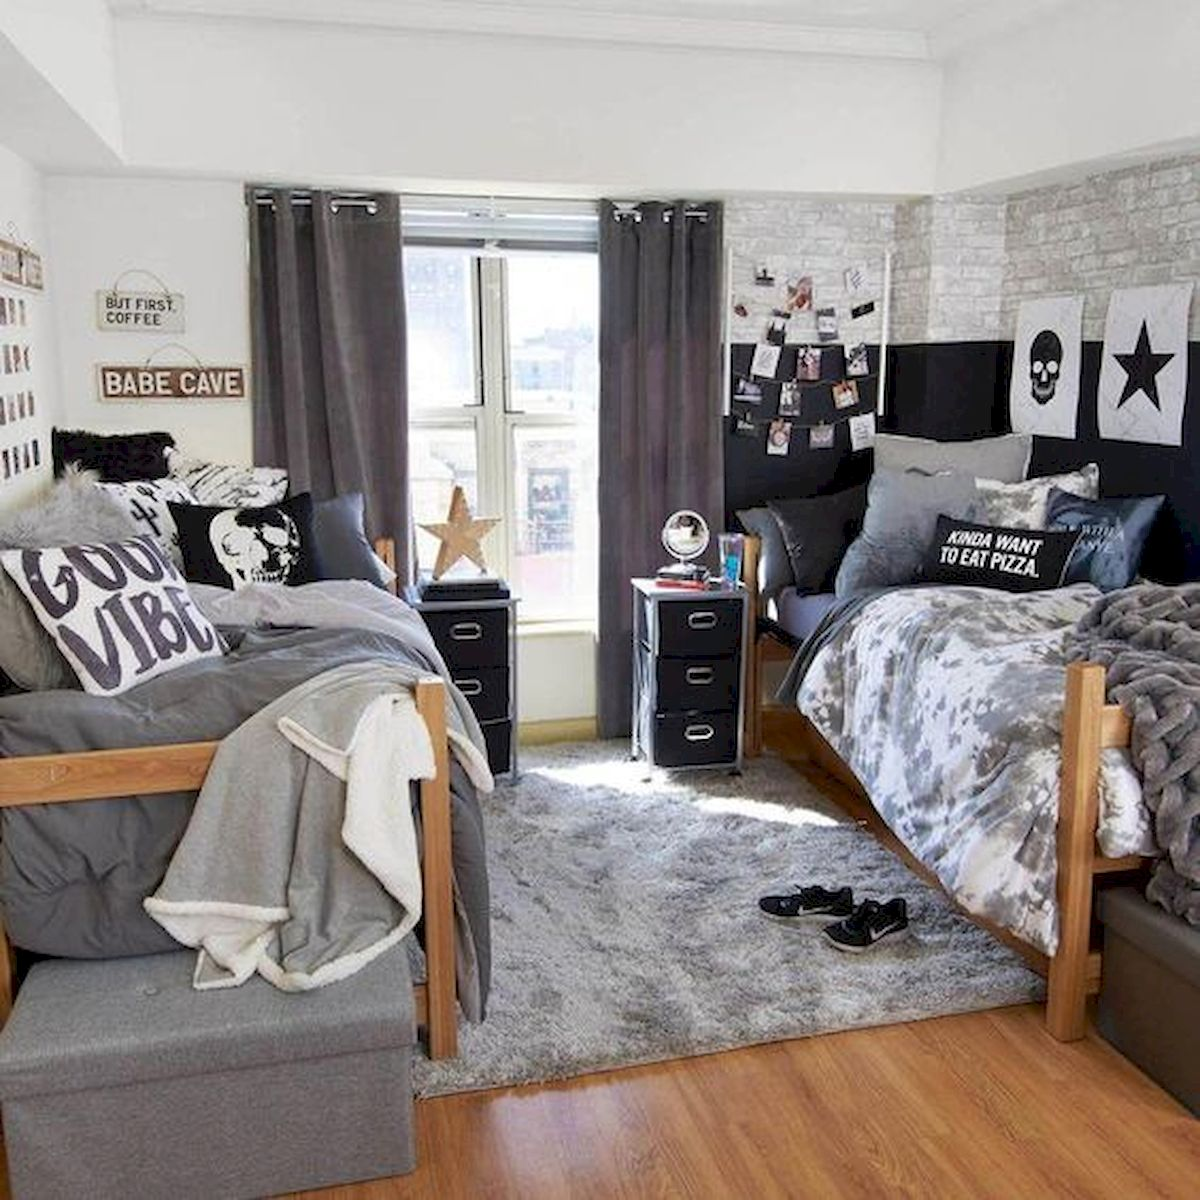 33 Ideas For Small Apartment Bedroom College (18)